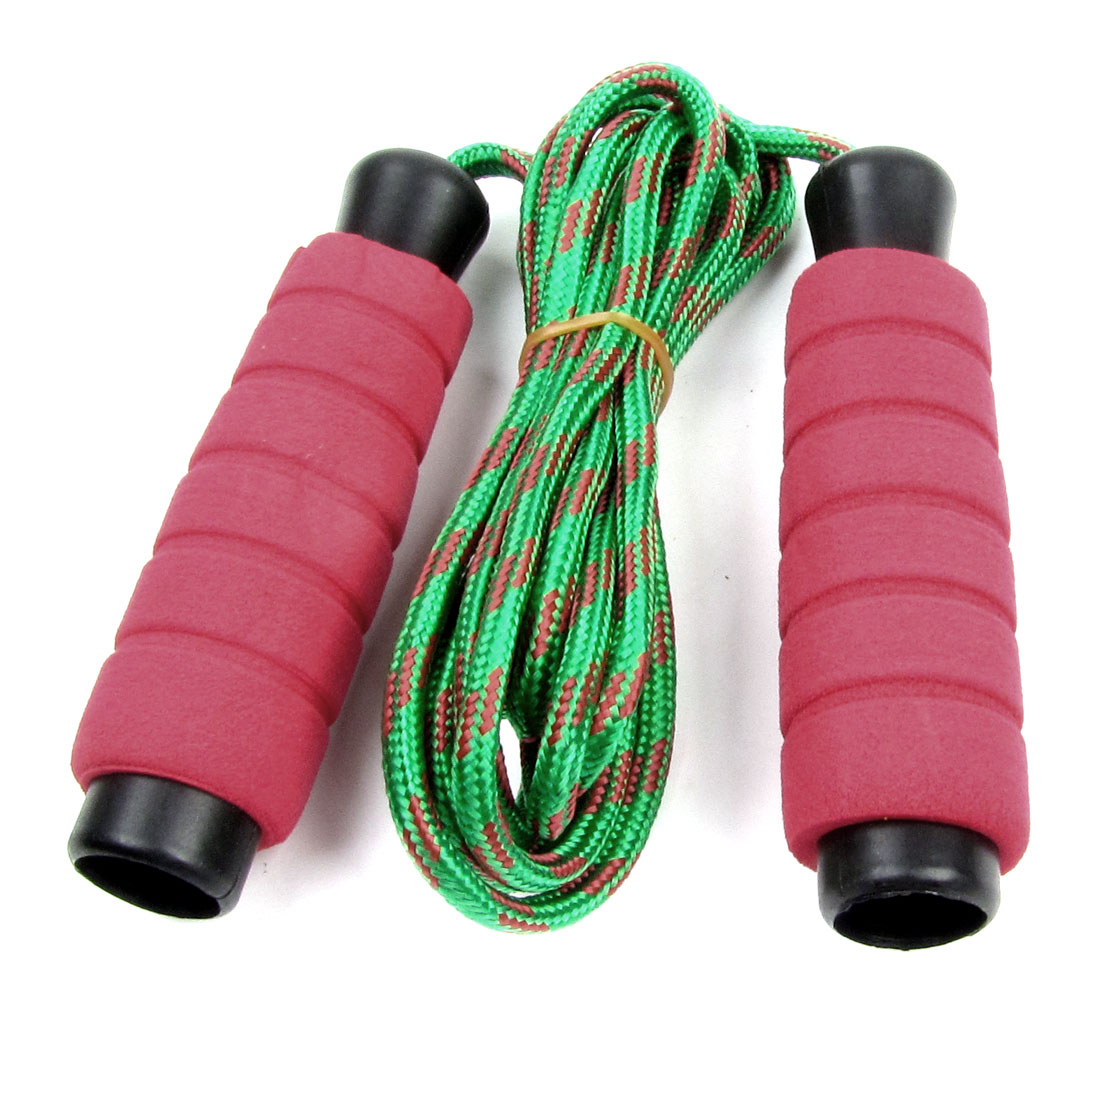 Exercise Magenta Sponge Handle Green Braid Cord kipping Jumping Skip Rope 7.2Ft